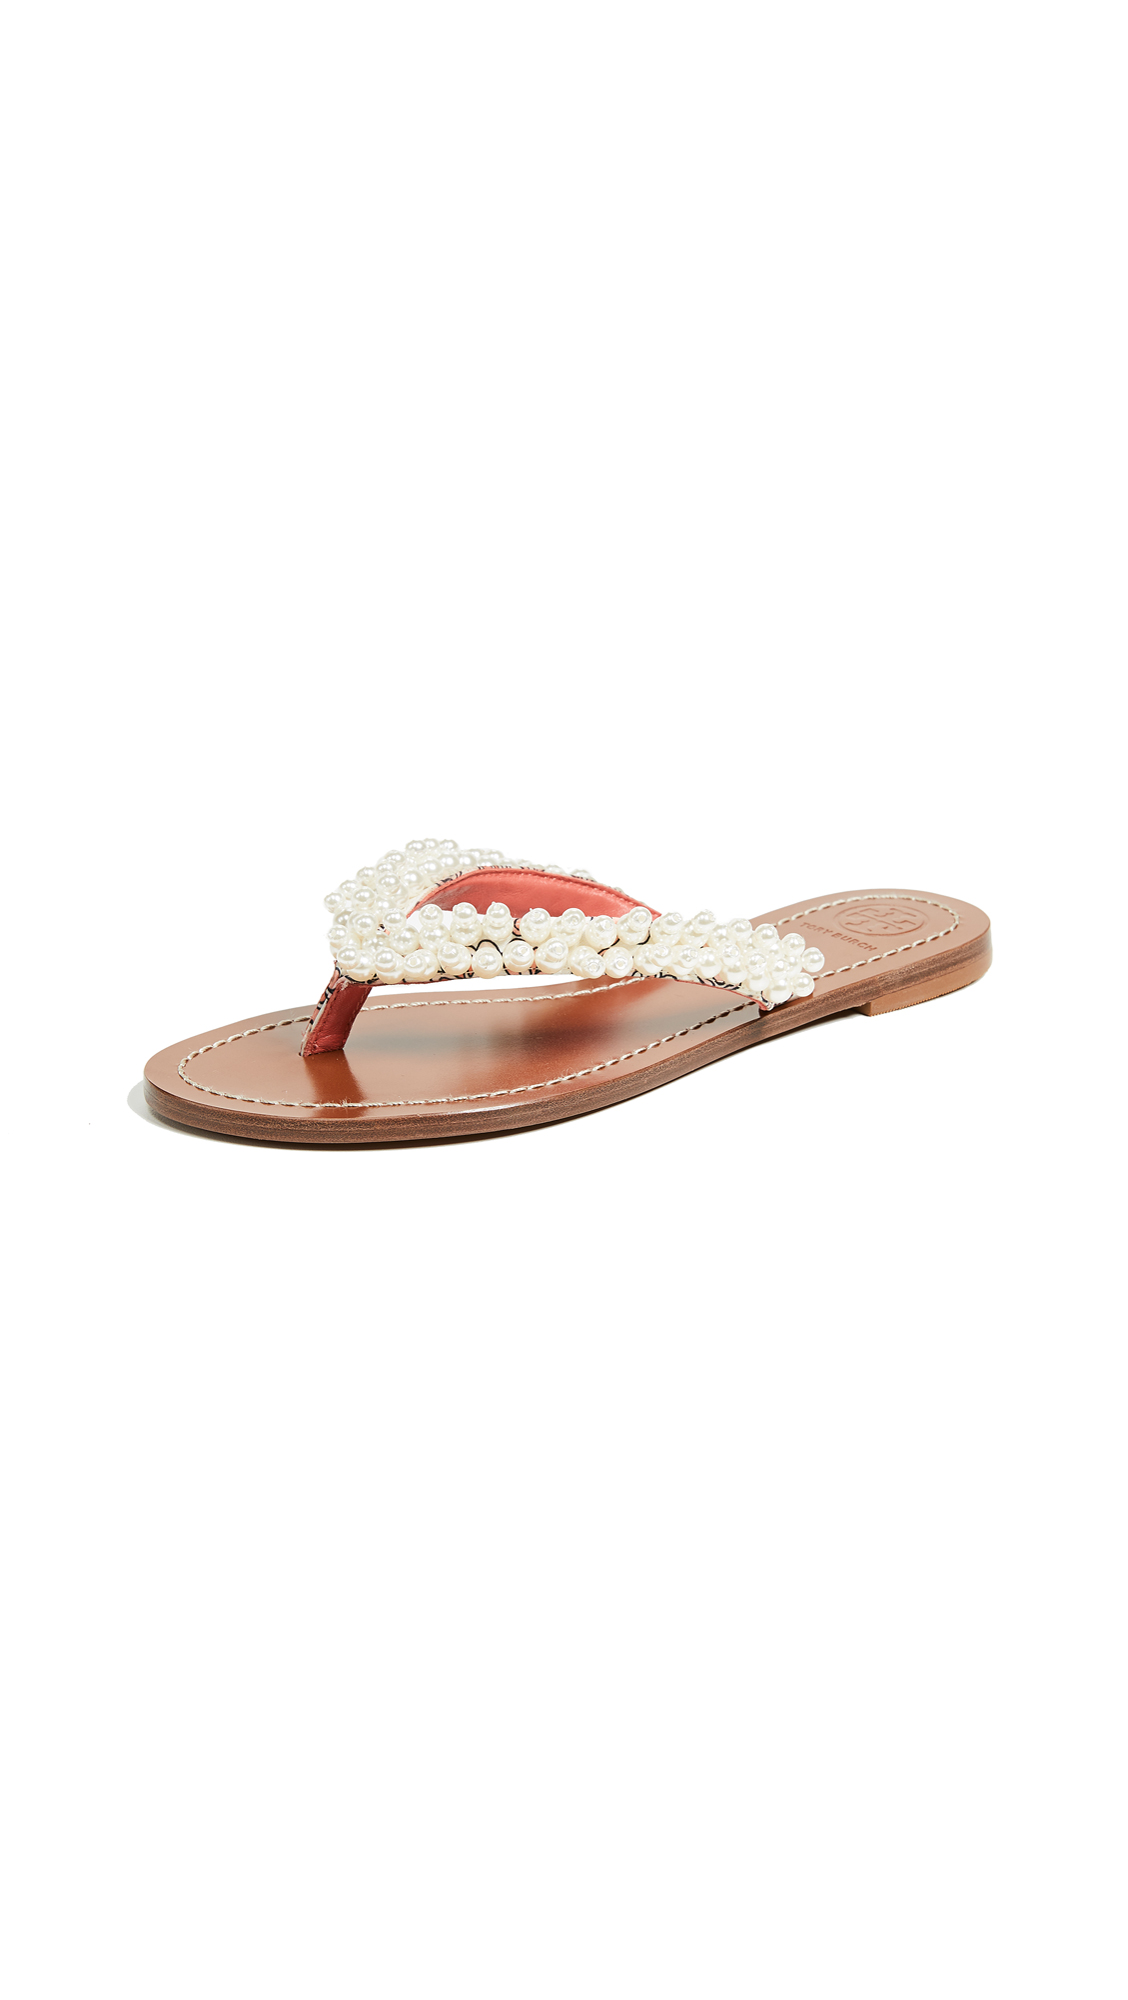 Tory Burch Tatiana Thong Sandals - Hicks Garden/Fresh Melon